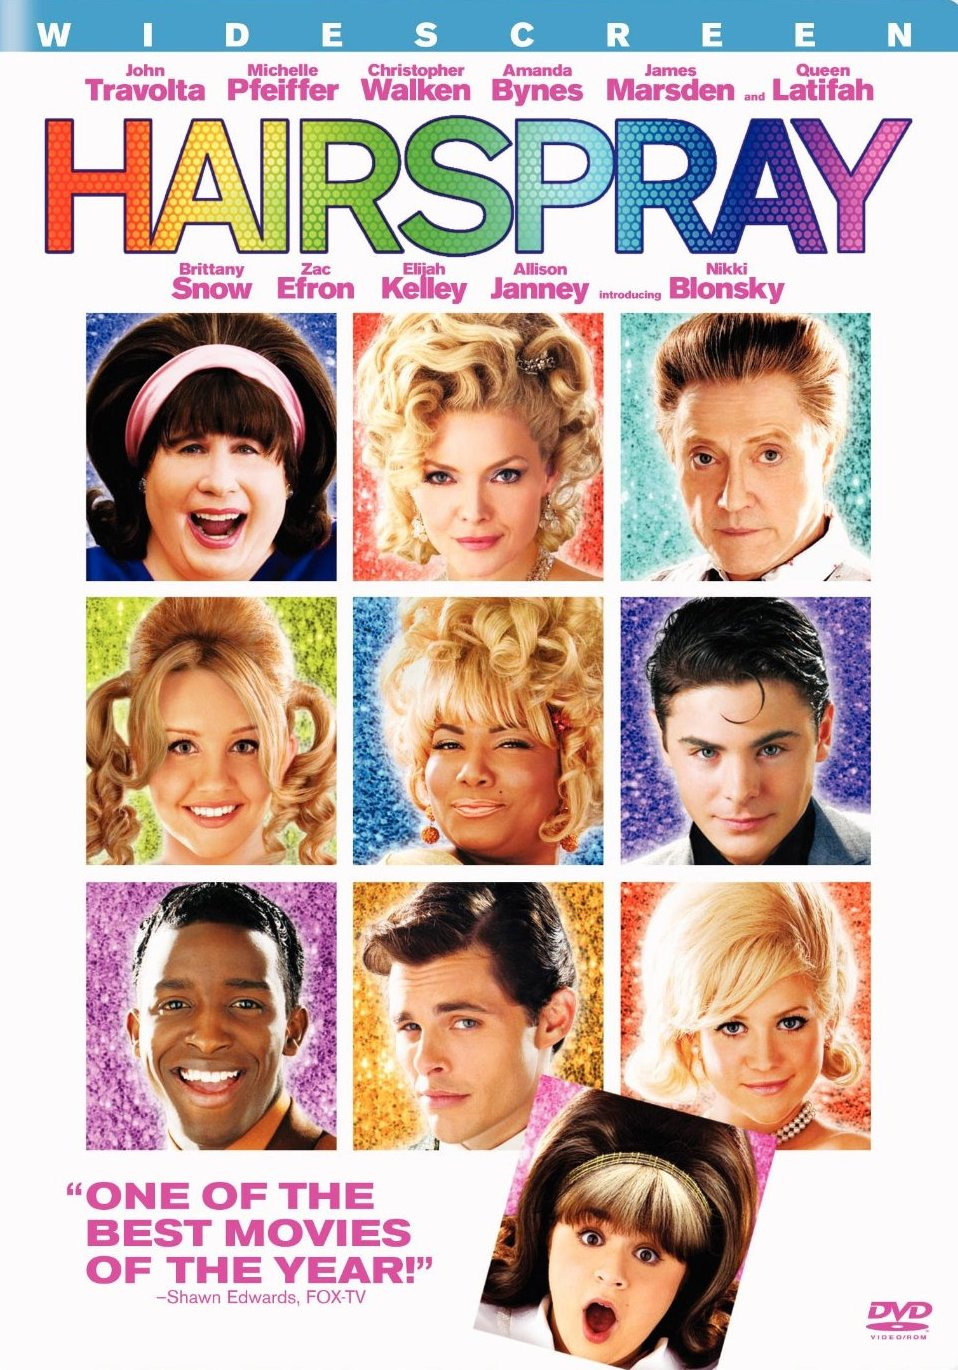 Tips from Chip: Movie – Hairspray (2007)